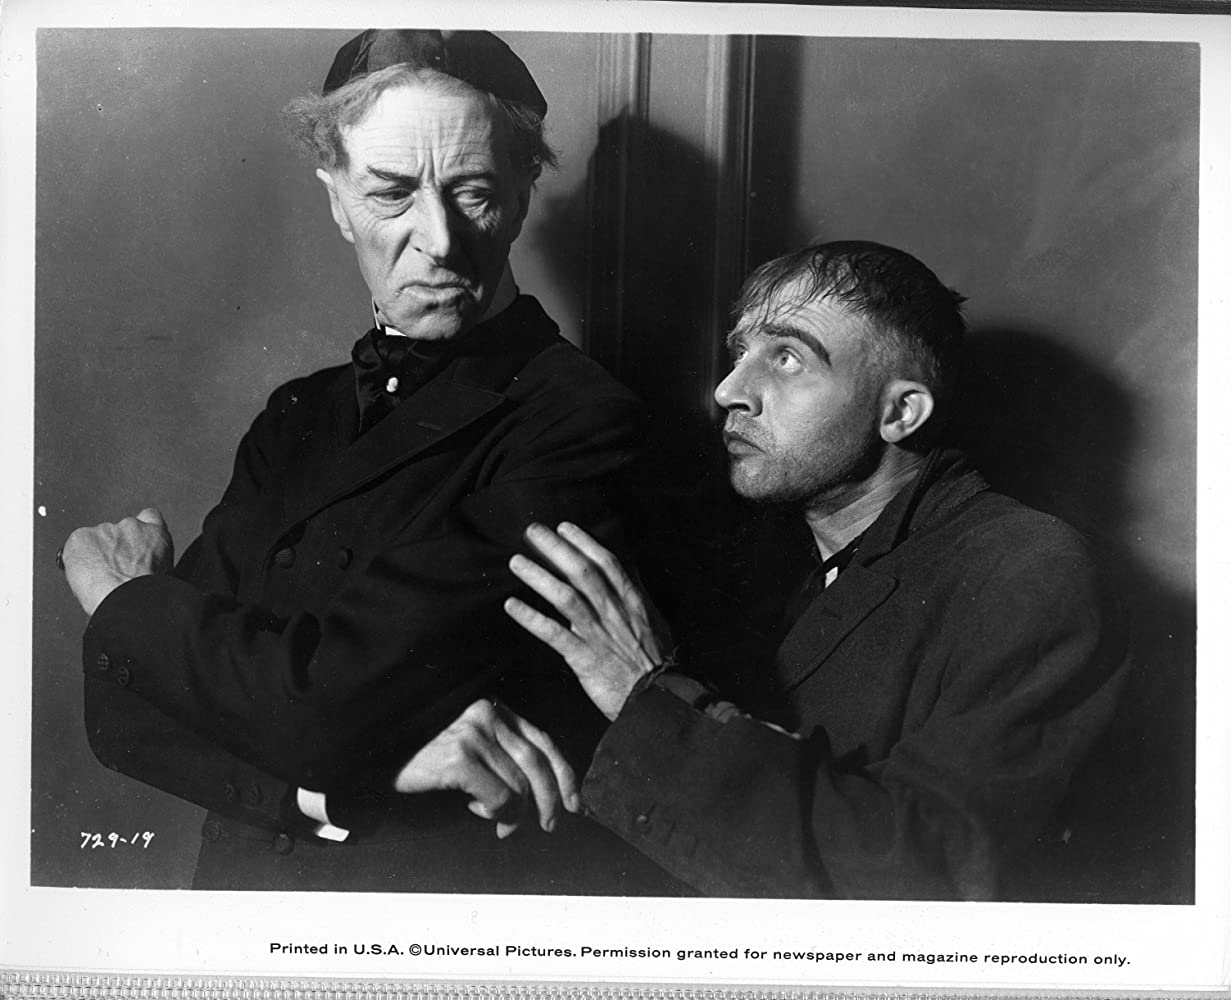 Dwight Frye and Ernest Thesiger in Bride of Frankenstein (1935)